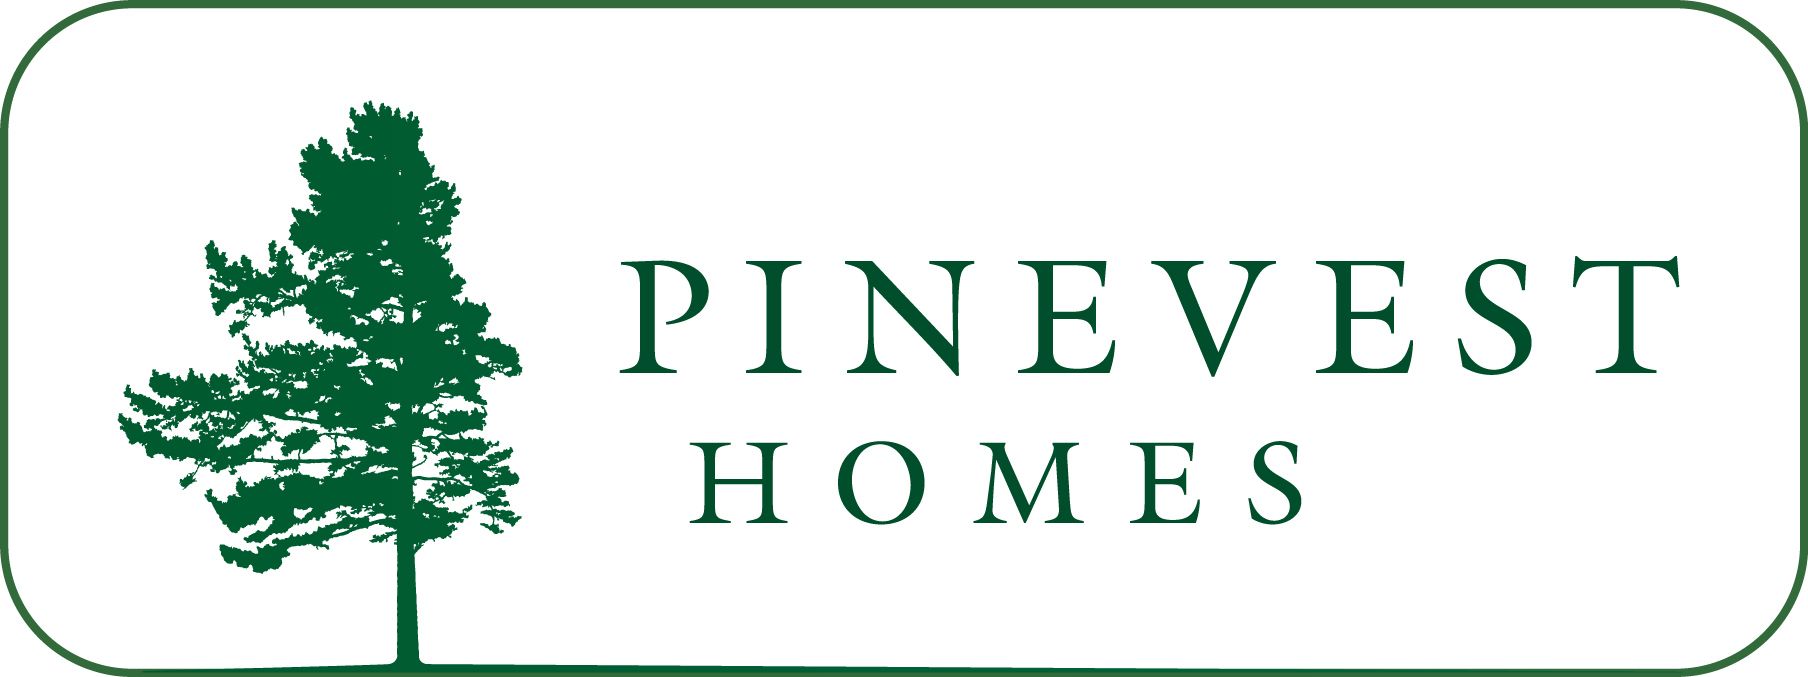 Pinevest homes logo